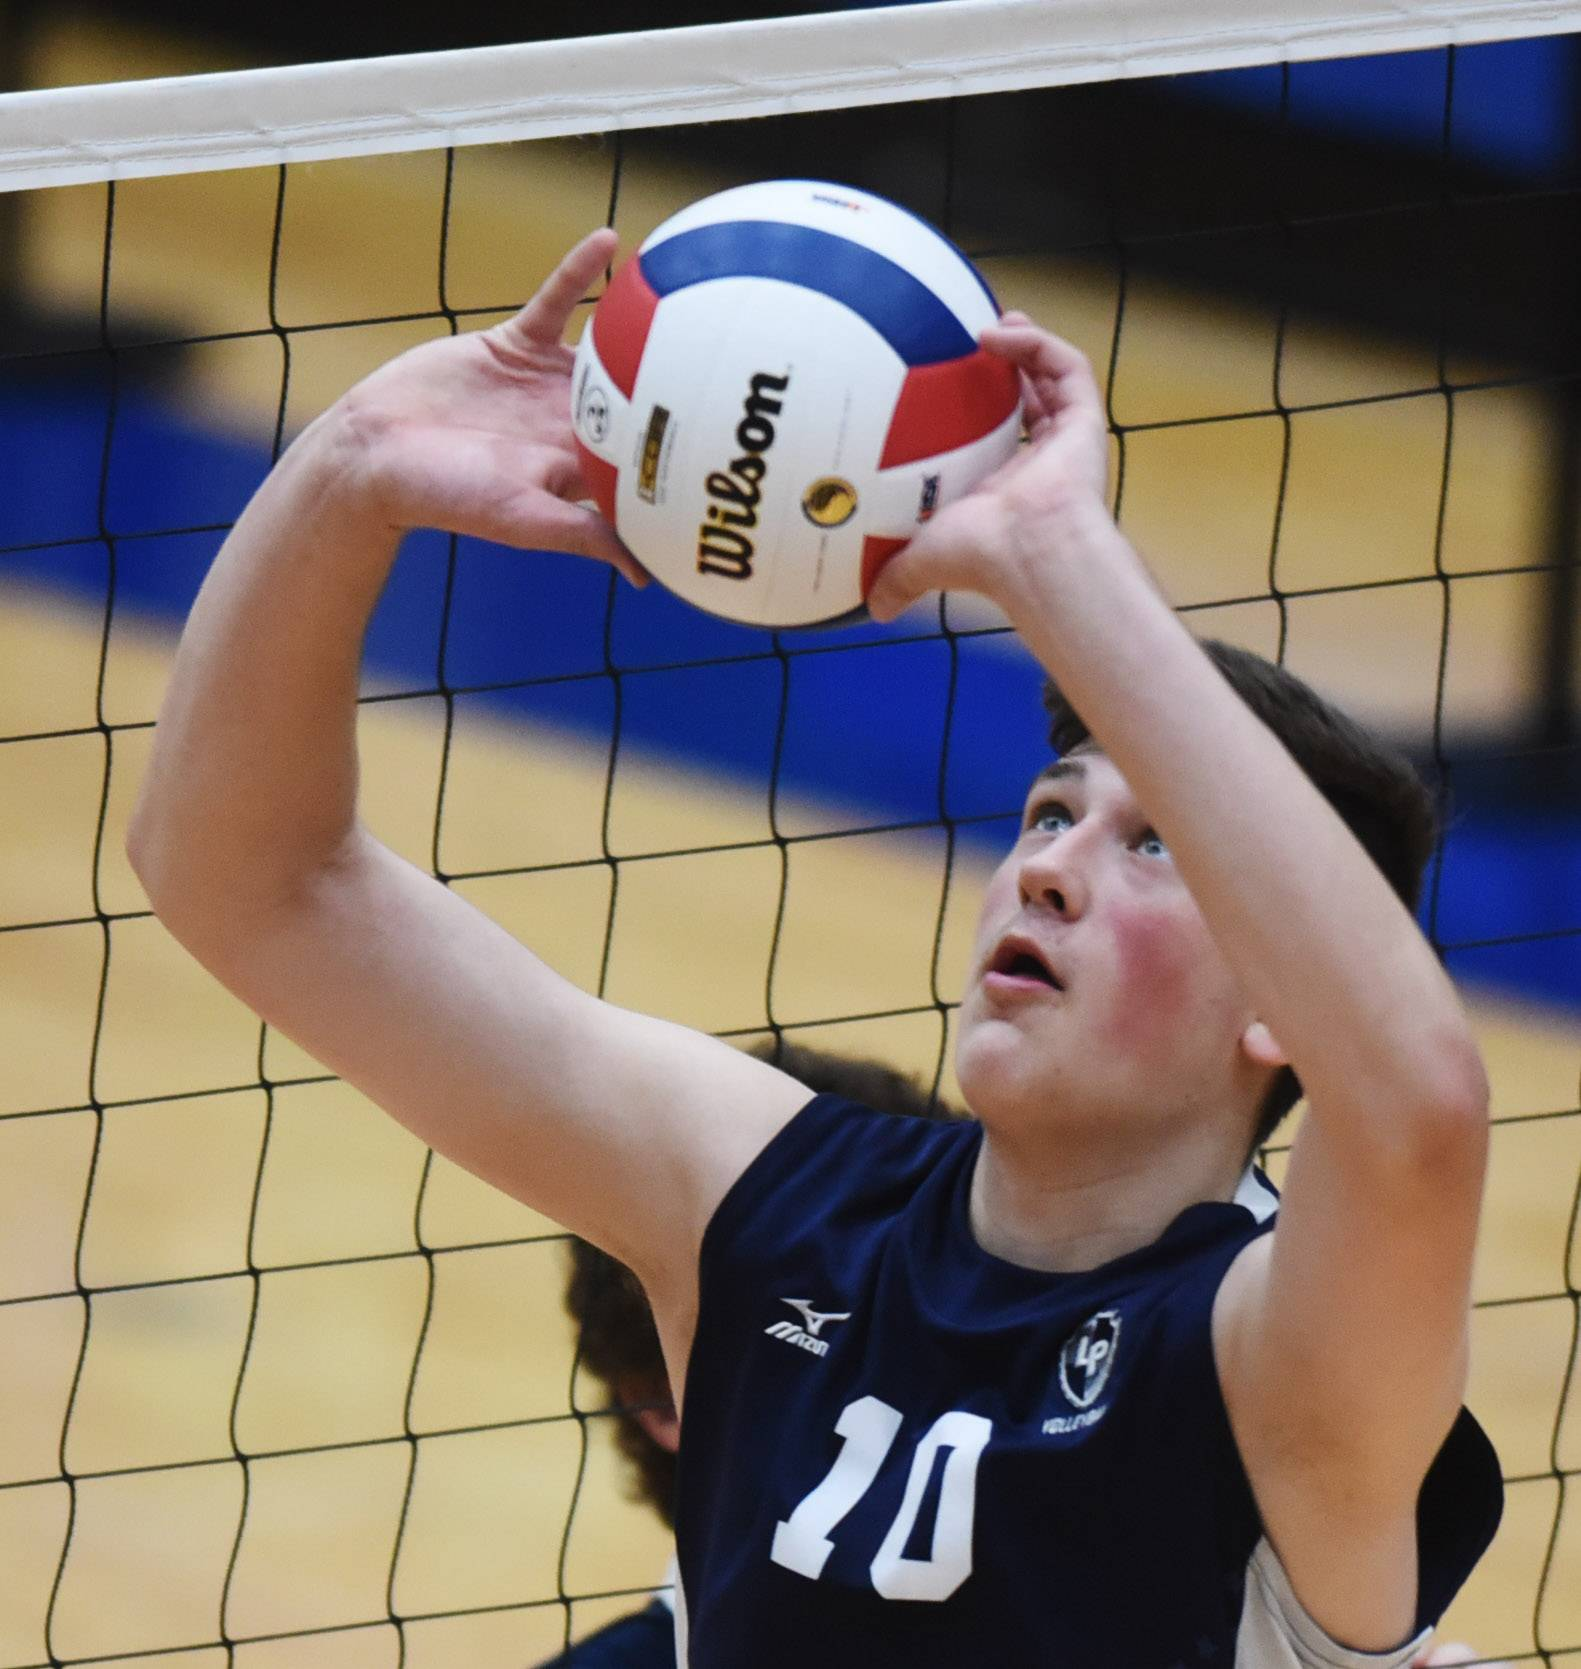 Lake Park's Justin Yost sets the ball during the boys volleyball state quarterfinals match against Oak Park-River Forest at Hoffman Estates High School Friday.